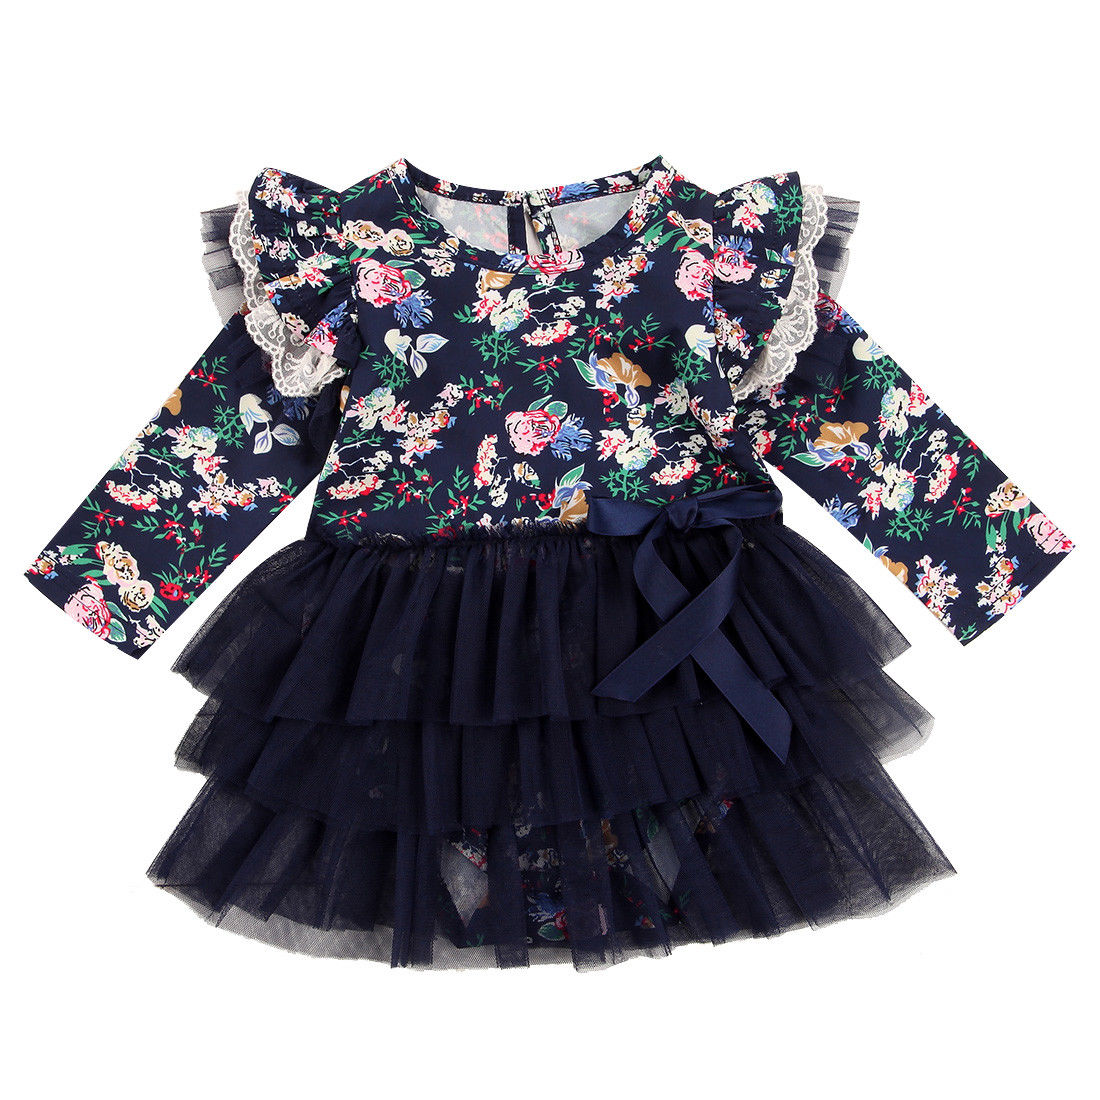 Infant Toddler Flower Girl Romper Lace Collar Cotton Ruffle Sleeve Baby Girls Spring Dresses